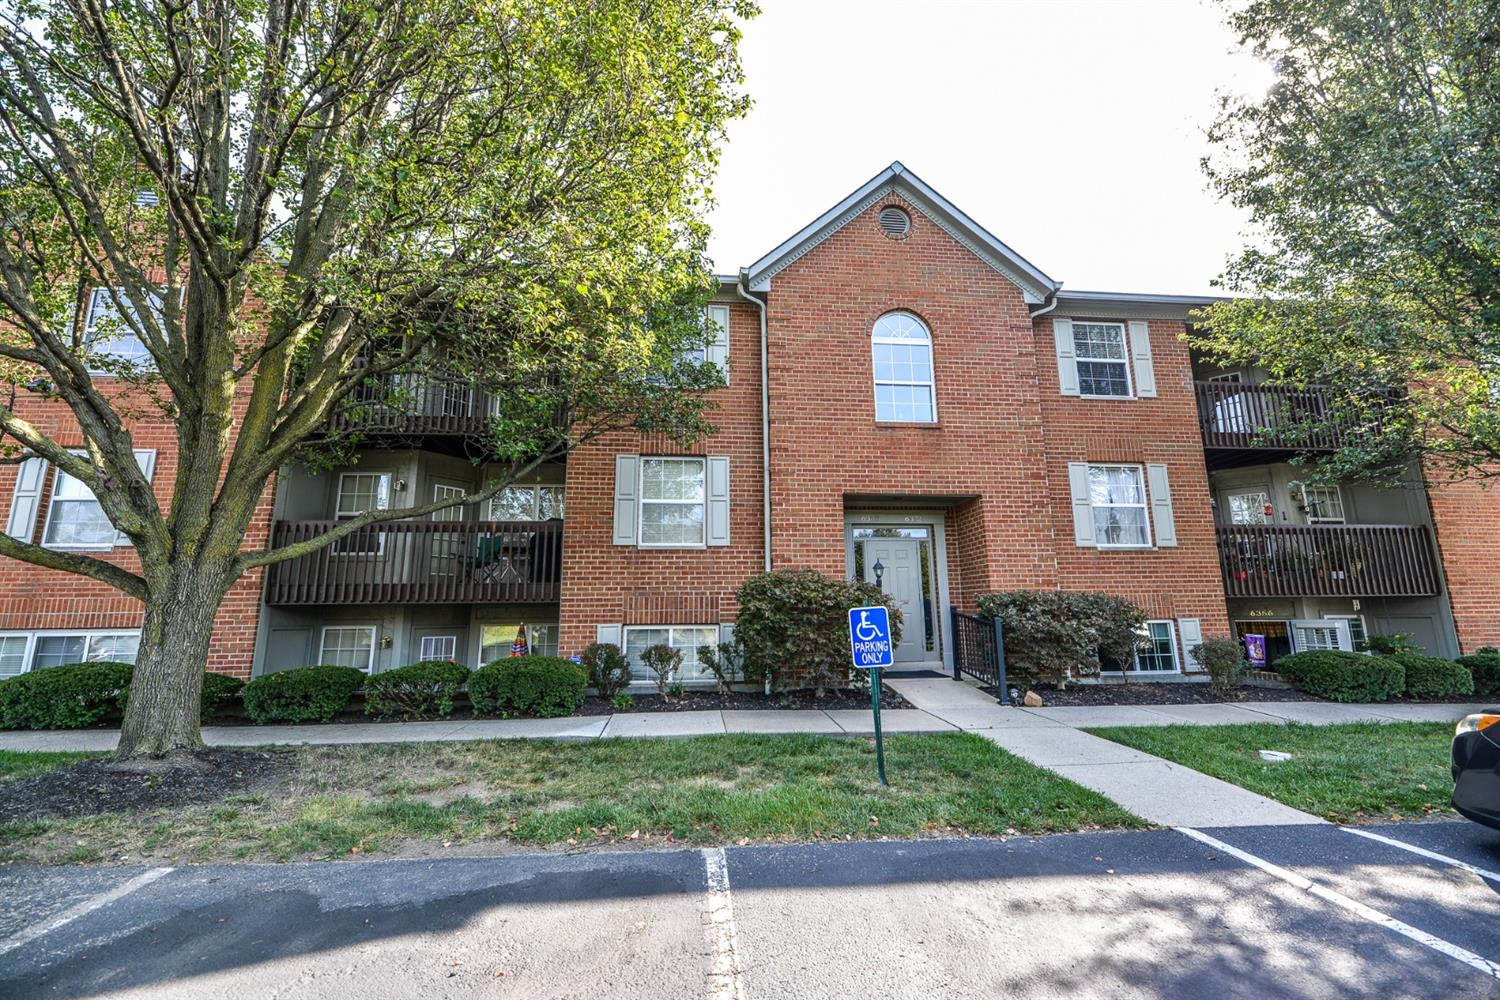 Truly move-in ready condo with features you normally don't see for the price! Updated kitchen w/solid surface counters, tile floor, soft close drawers, wine cooler. All appliances stay. Master w/in closet w/Cali Closet shelving. 2nd BR full bath adjoins. New carpet '20, HVAC'14, Wtr Htr'13. No steps possible using rear entrance. Detached garage.